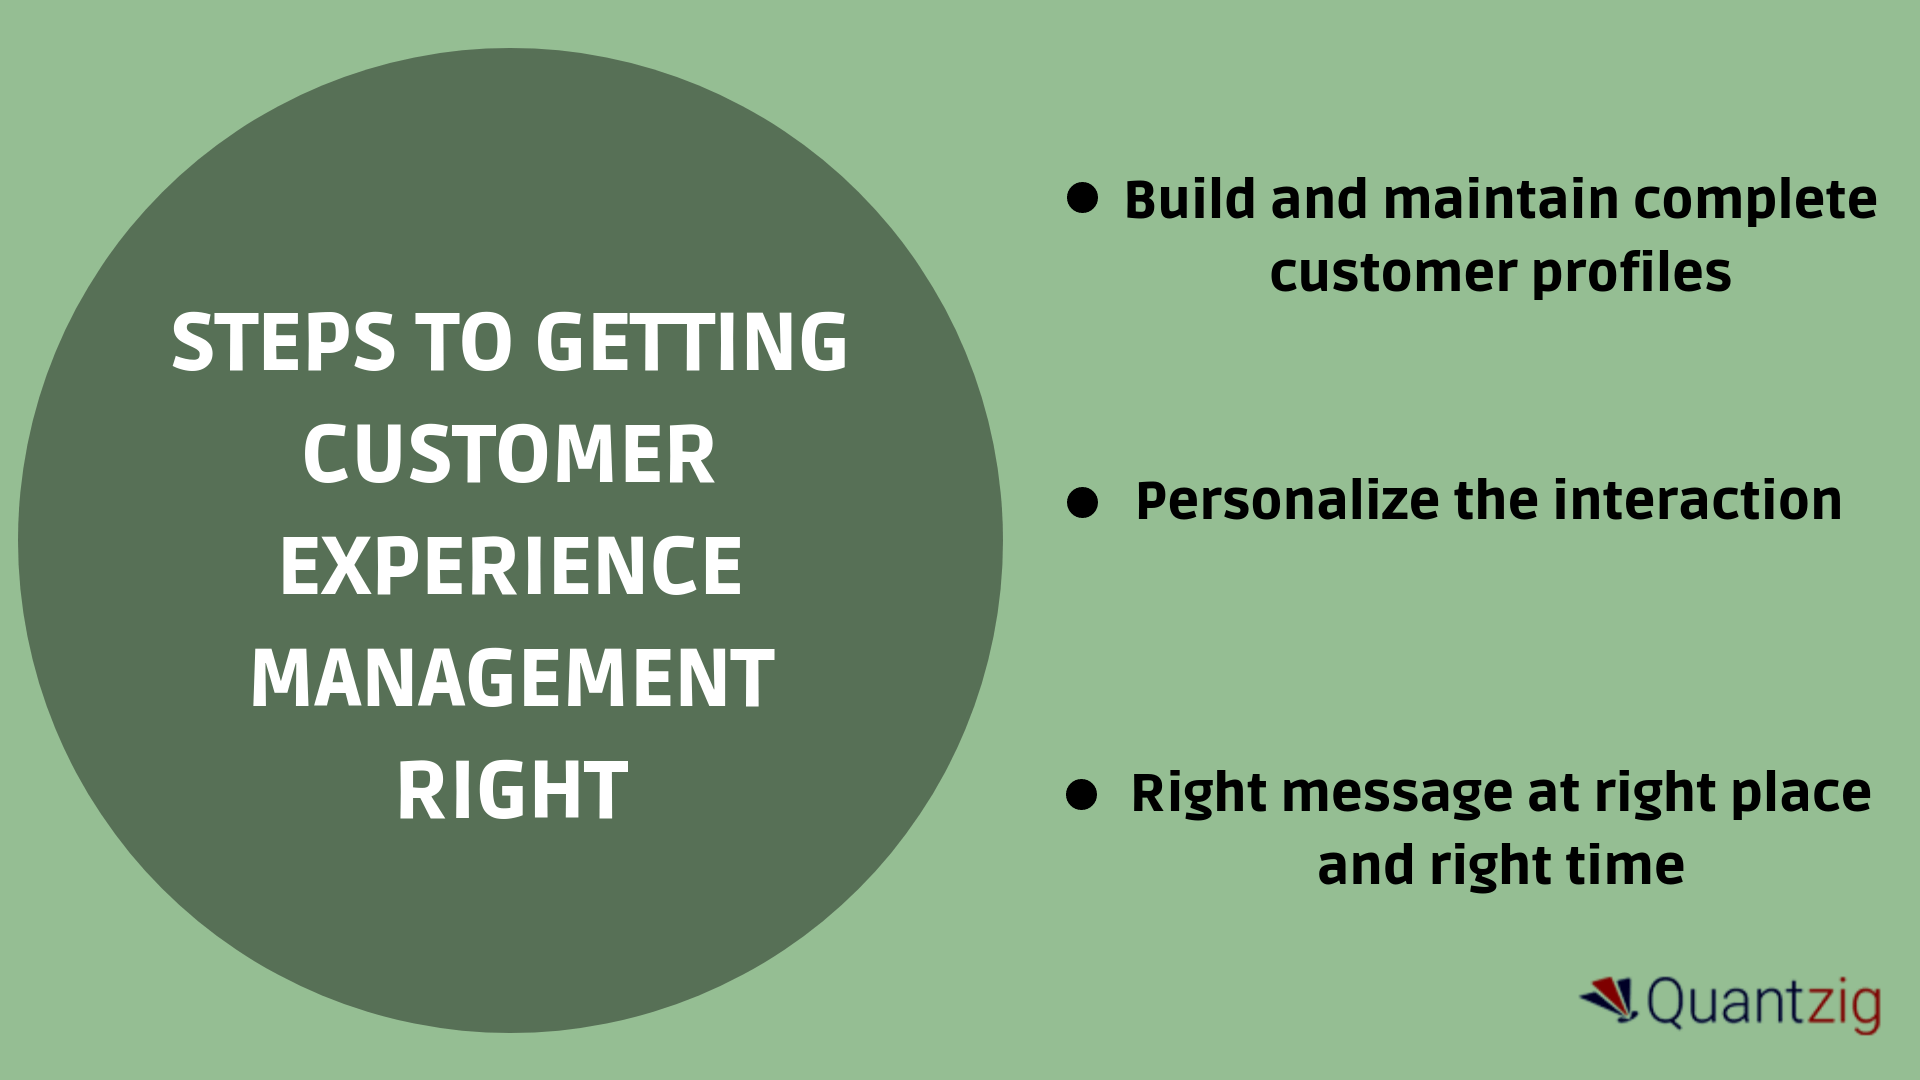 steps to getting customer experience management right (1)